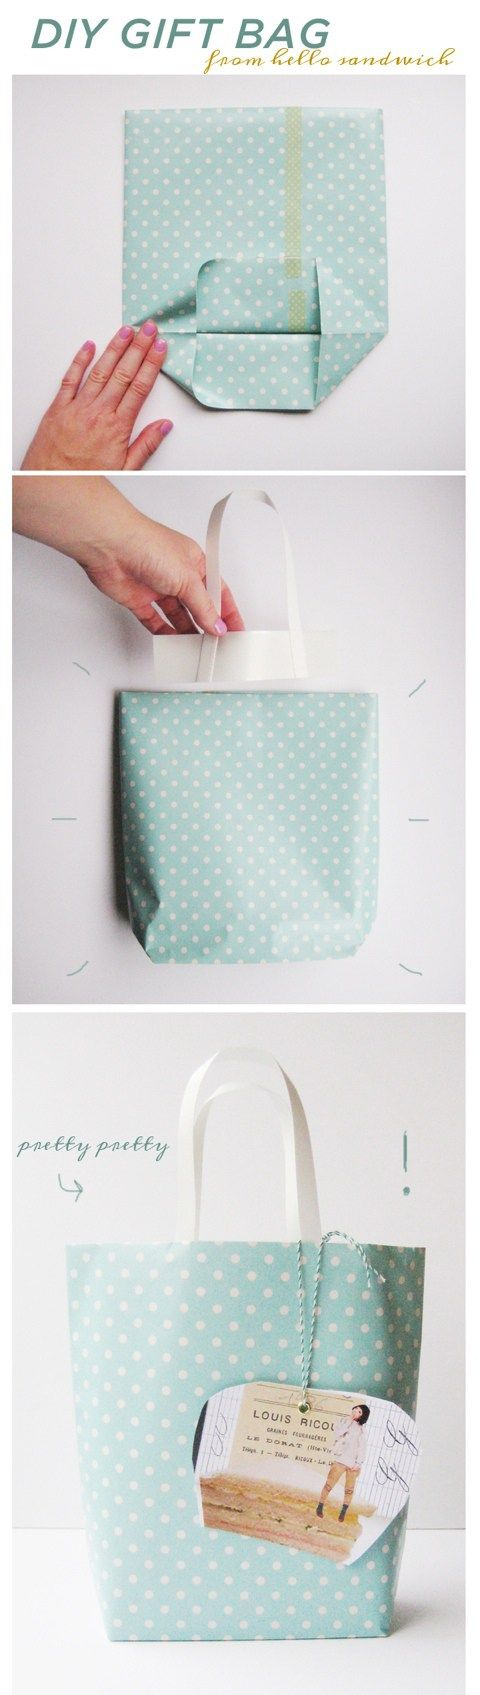 Here's another idea for something fun to do with that scrapbook paper you have tucked away…make a super fancy gift bag! Here is a great tutorial from the JoannaNoelBlog that shows you how! http://joannanoelblog.blogspot.com/2011/12/diy-gift-to-bag.html *image credit: joannanoelblog.blogspot.com Related